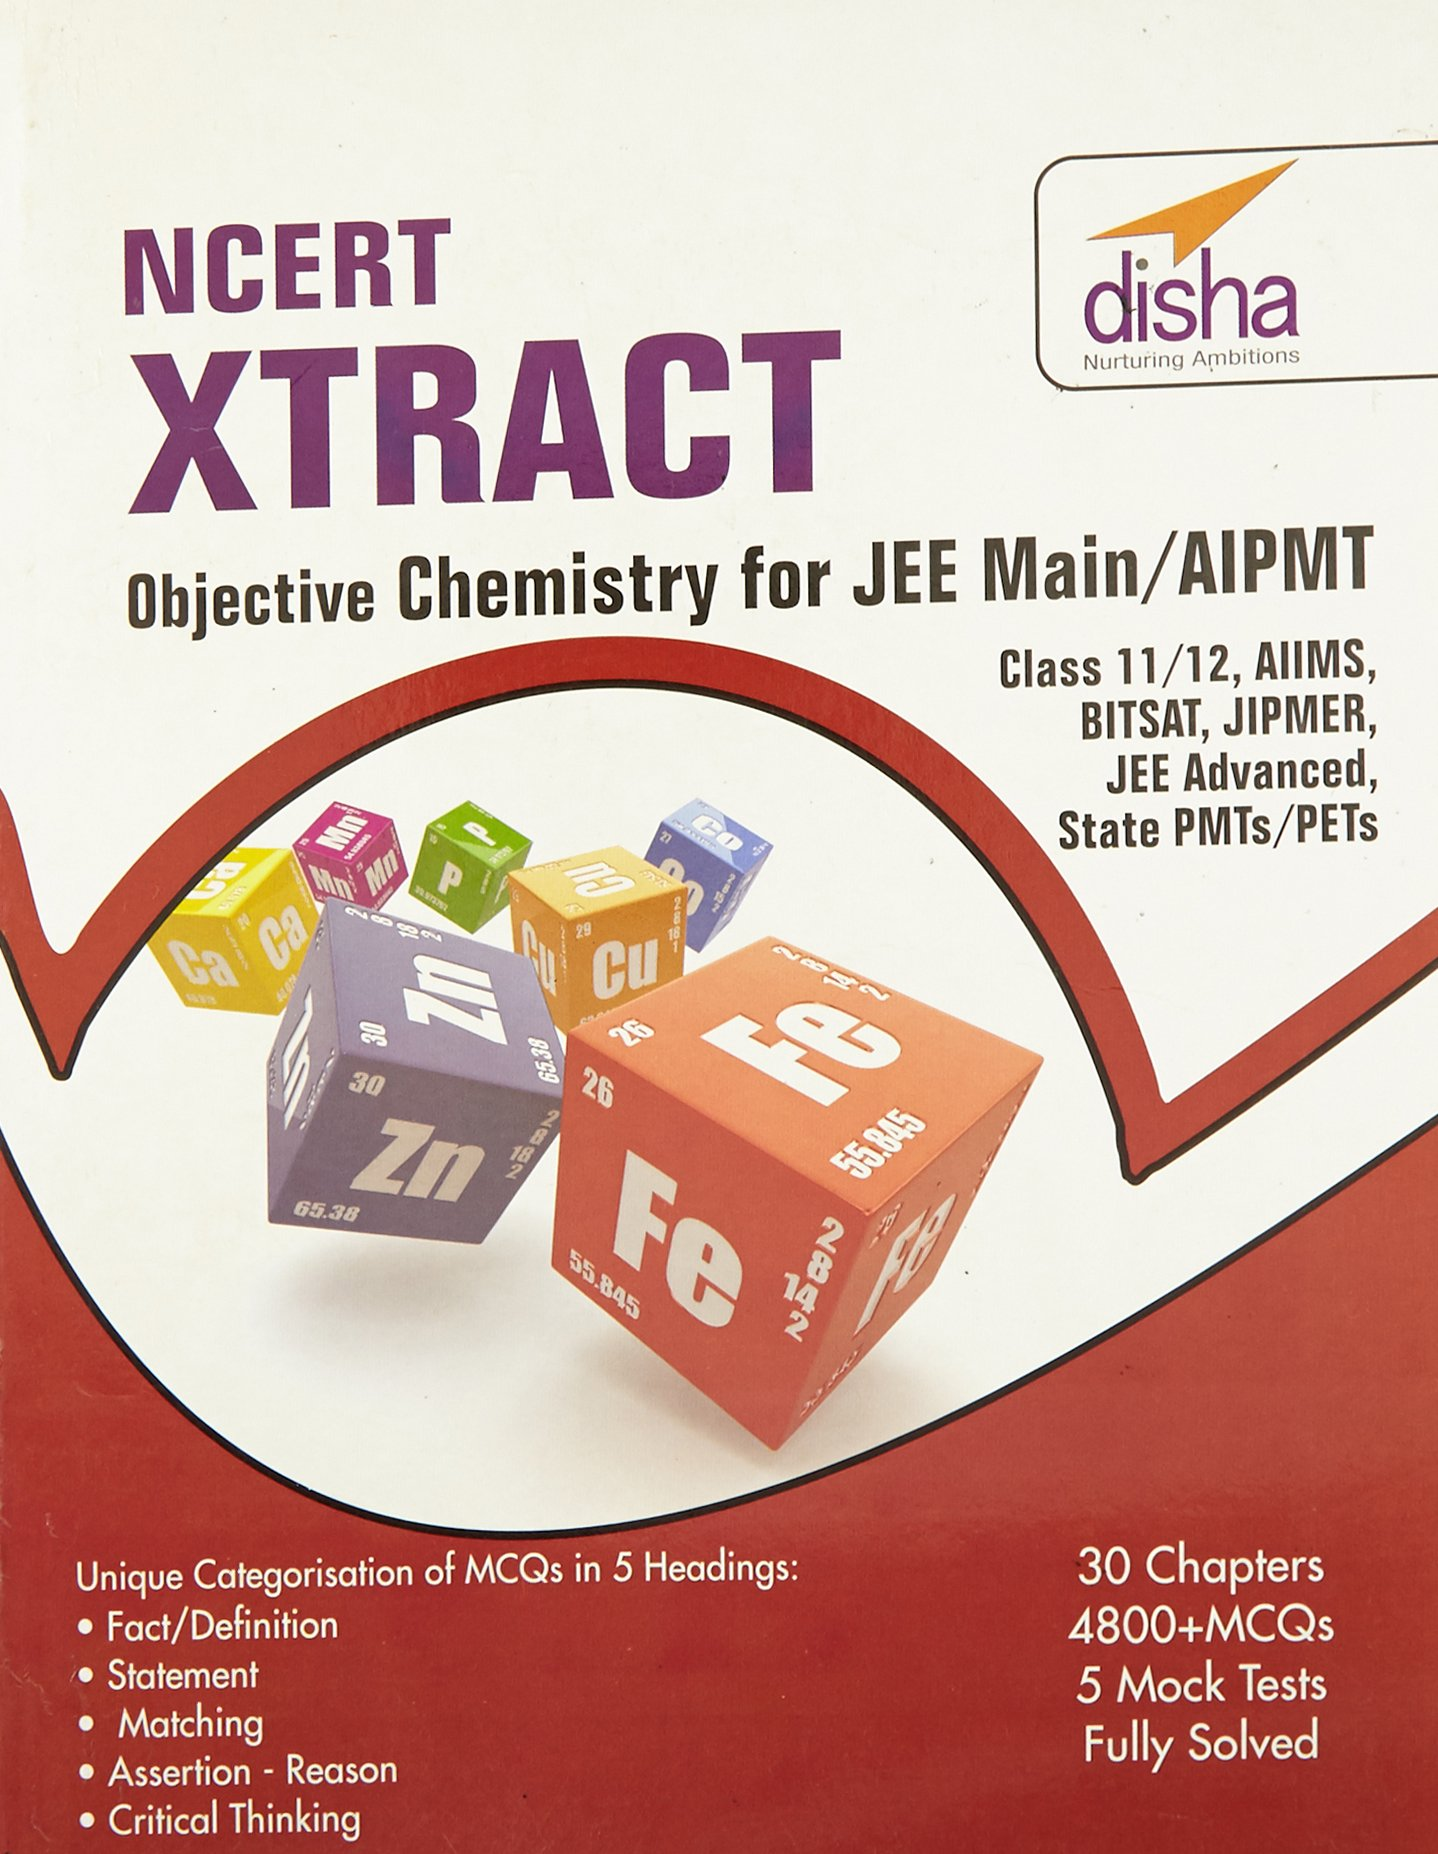 Buy NCERT Xtract - Objective Chemistry for JEE Main, AIPMT